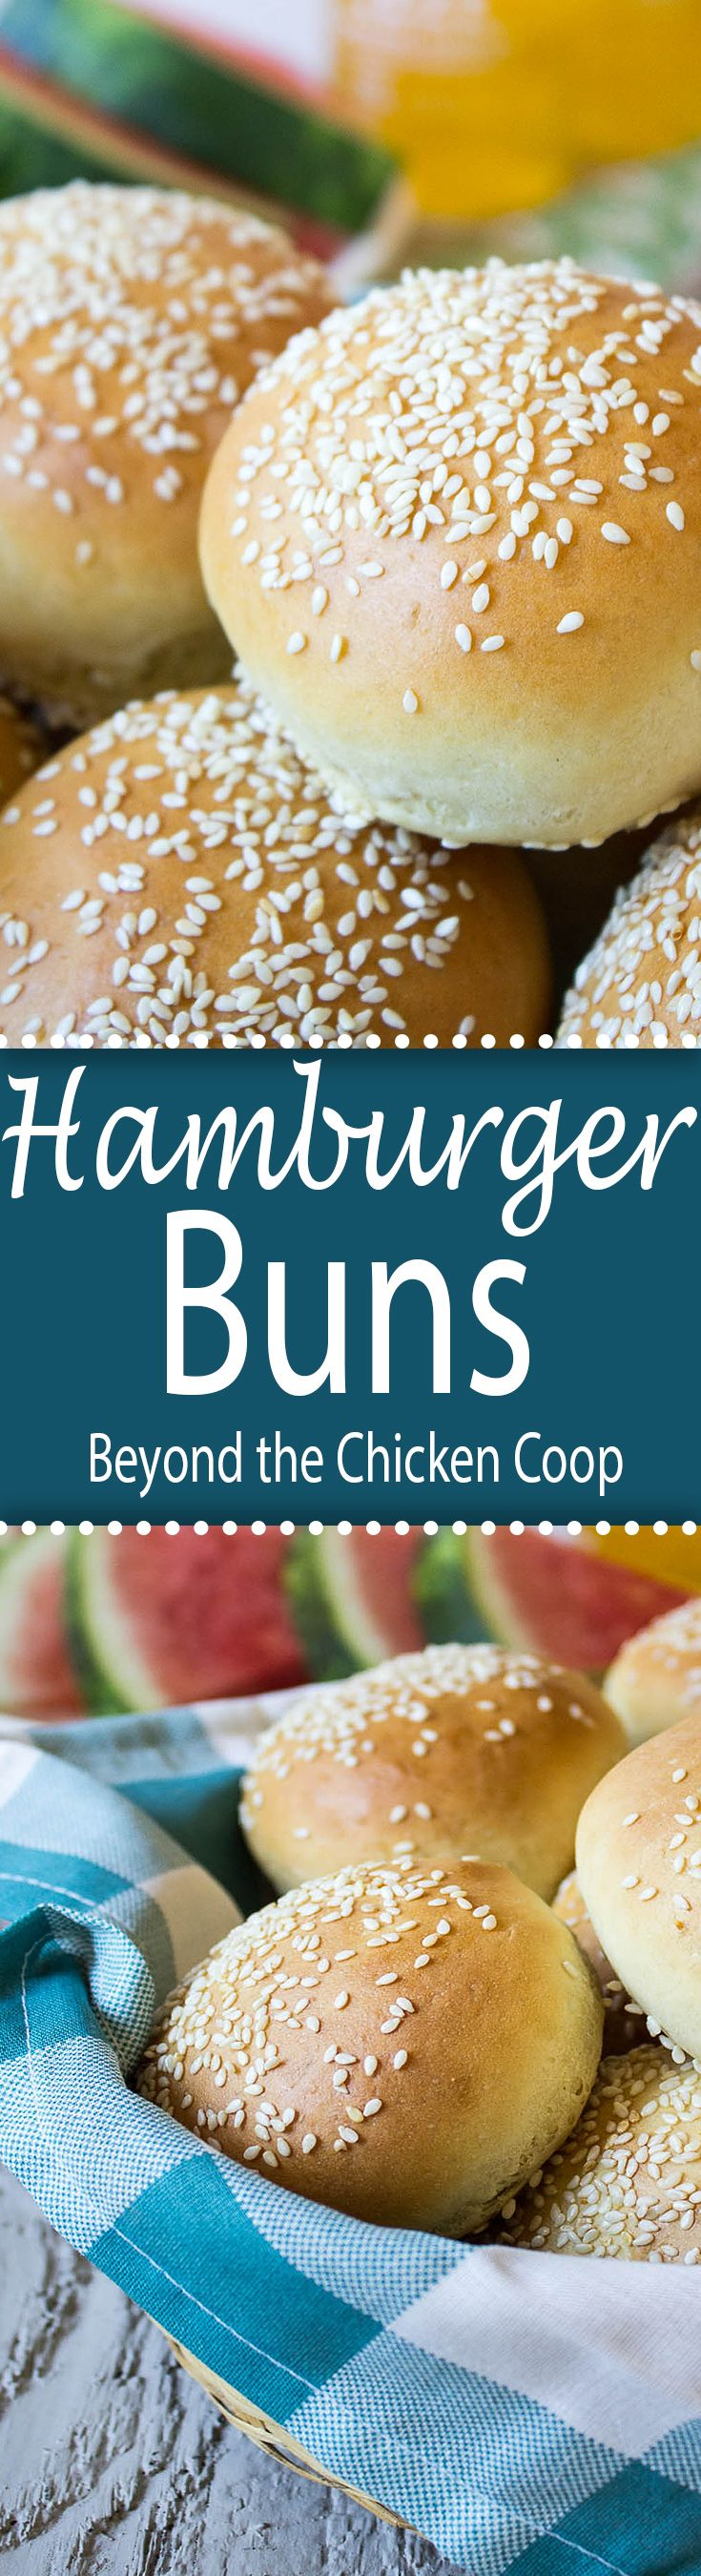 Homemade hamburger buns are so much better than anything you can buy in the store. beyondthechickencoop.com